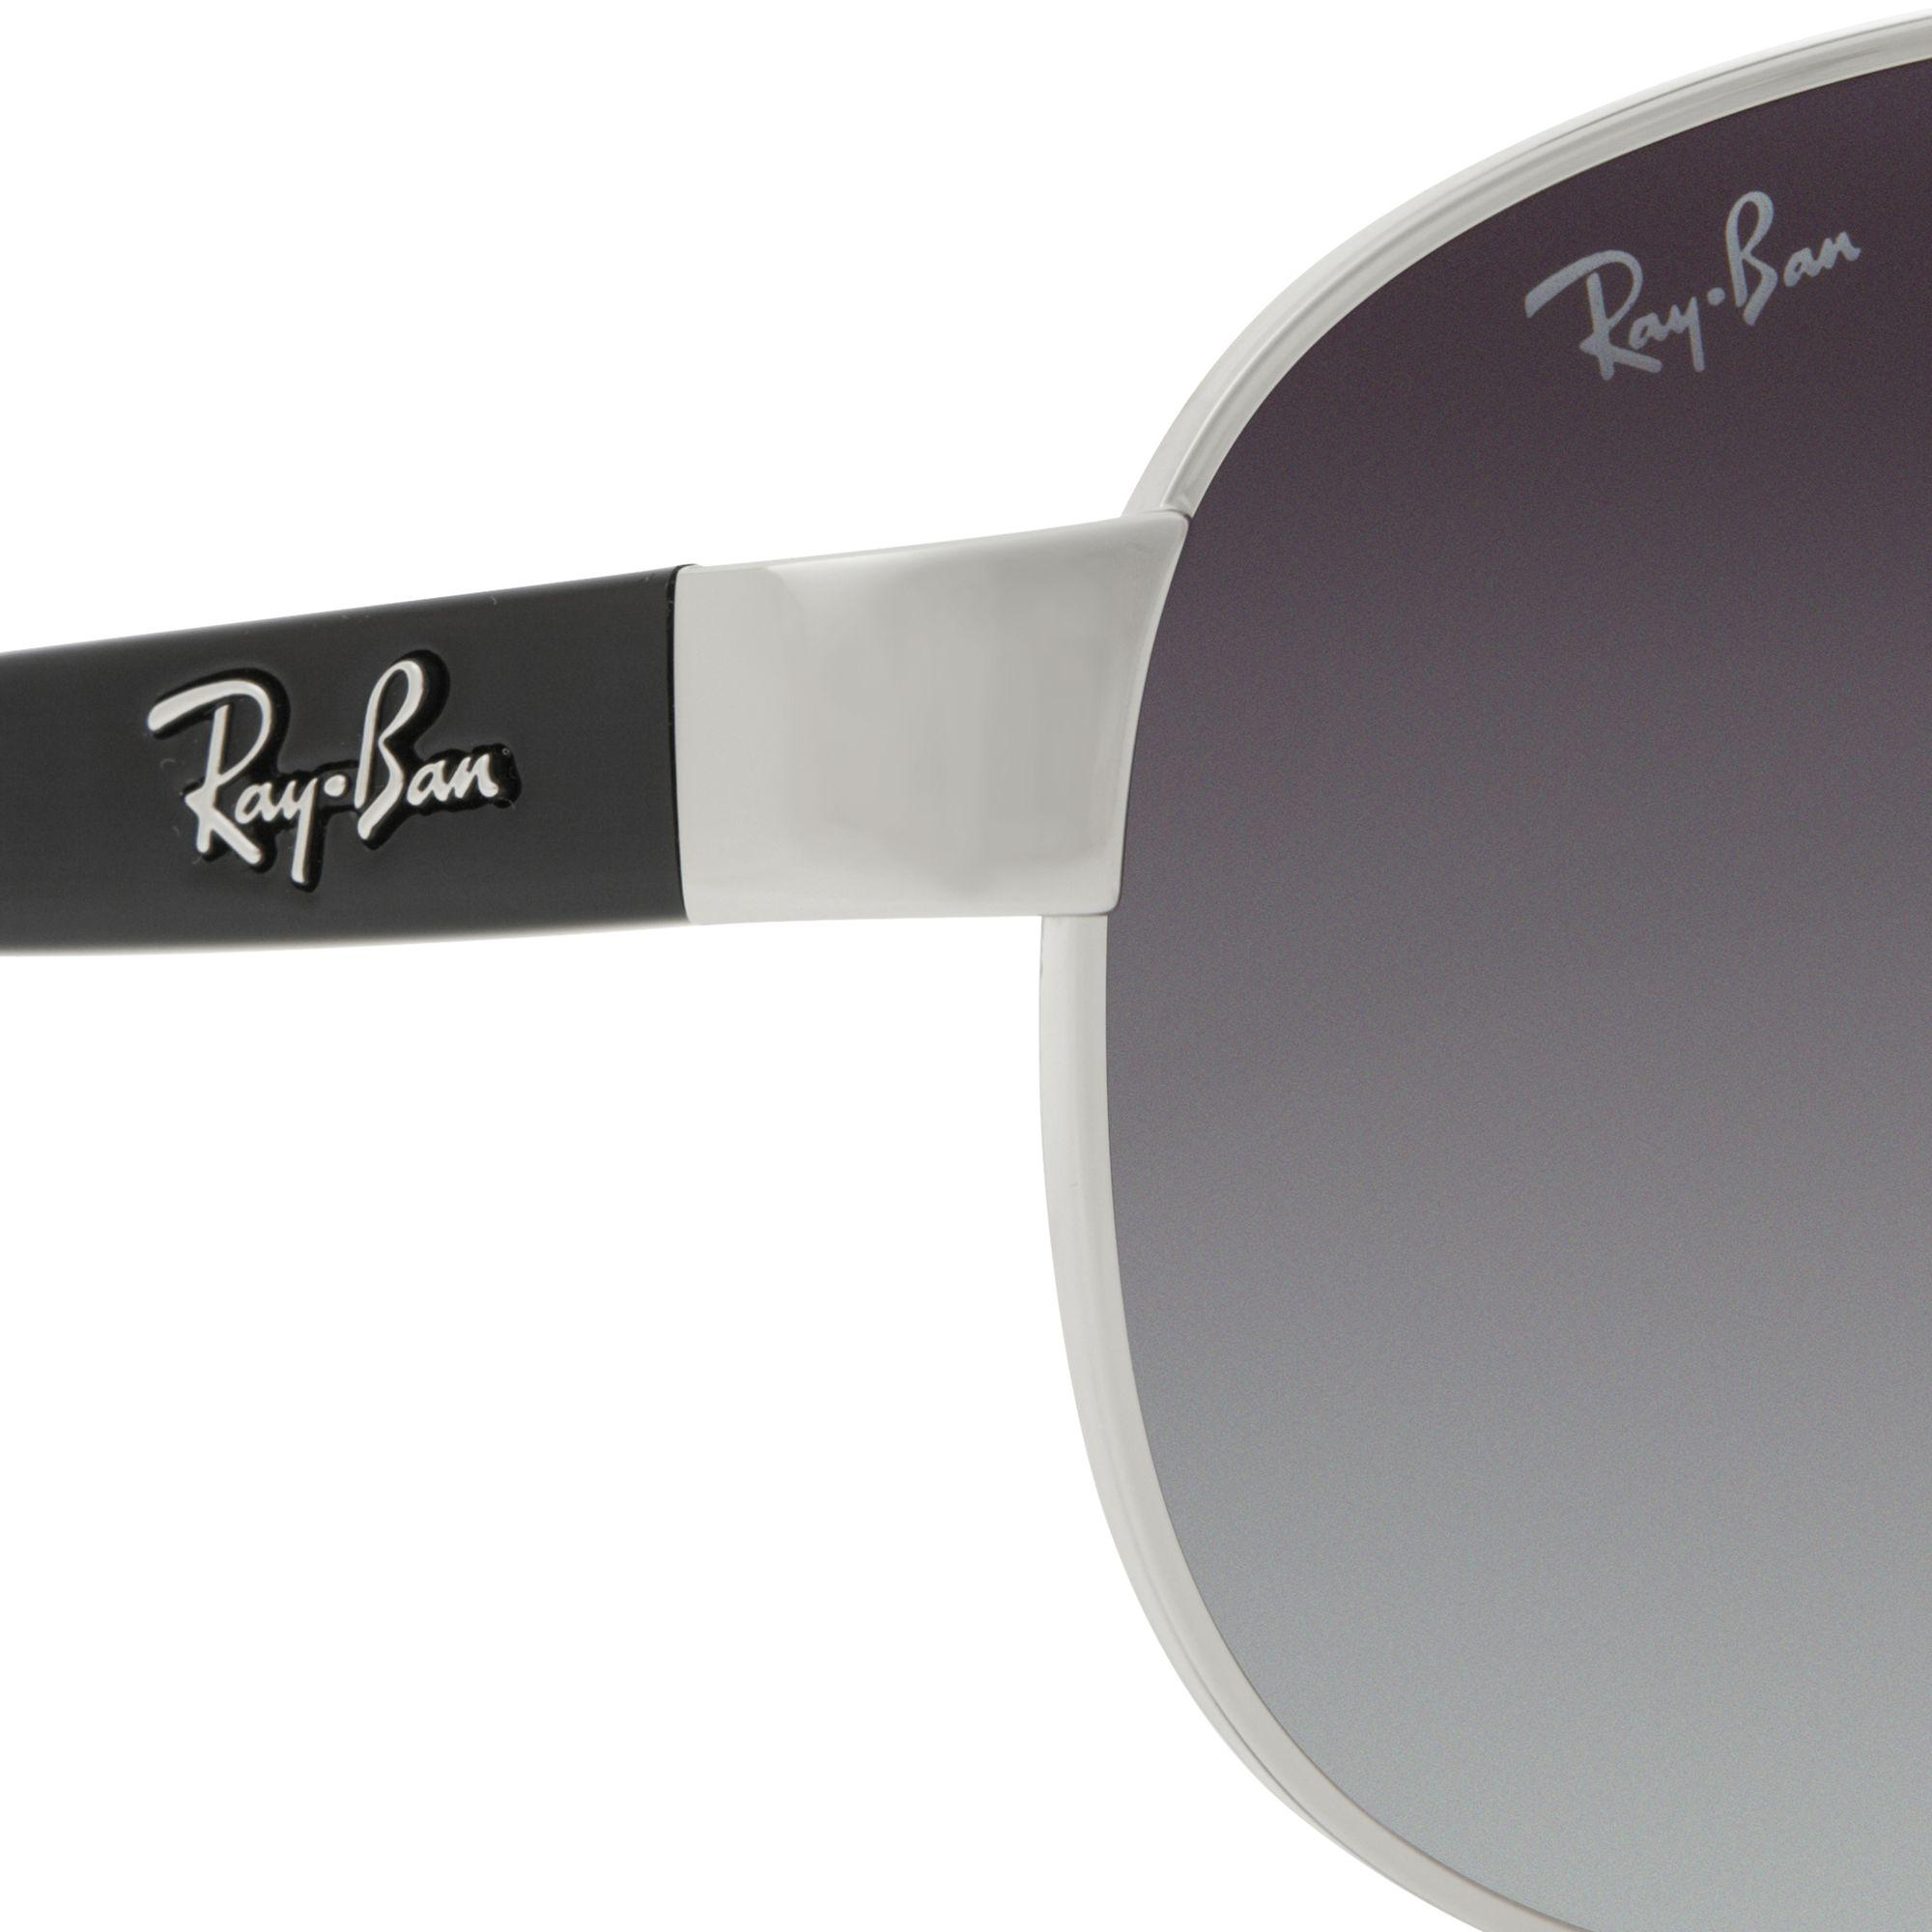 2582945be8 Ray-Ban Rb3386 Oval Aviator Sunglasses in Gray for Men - Lyst